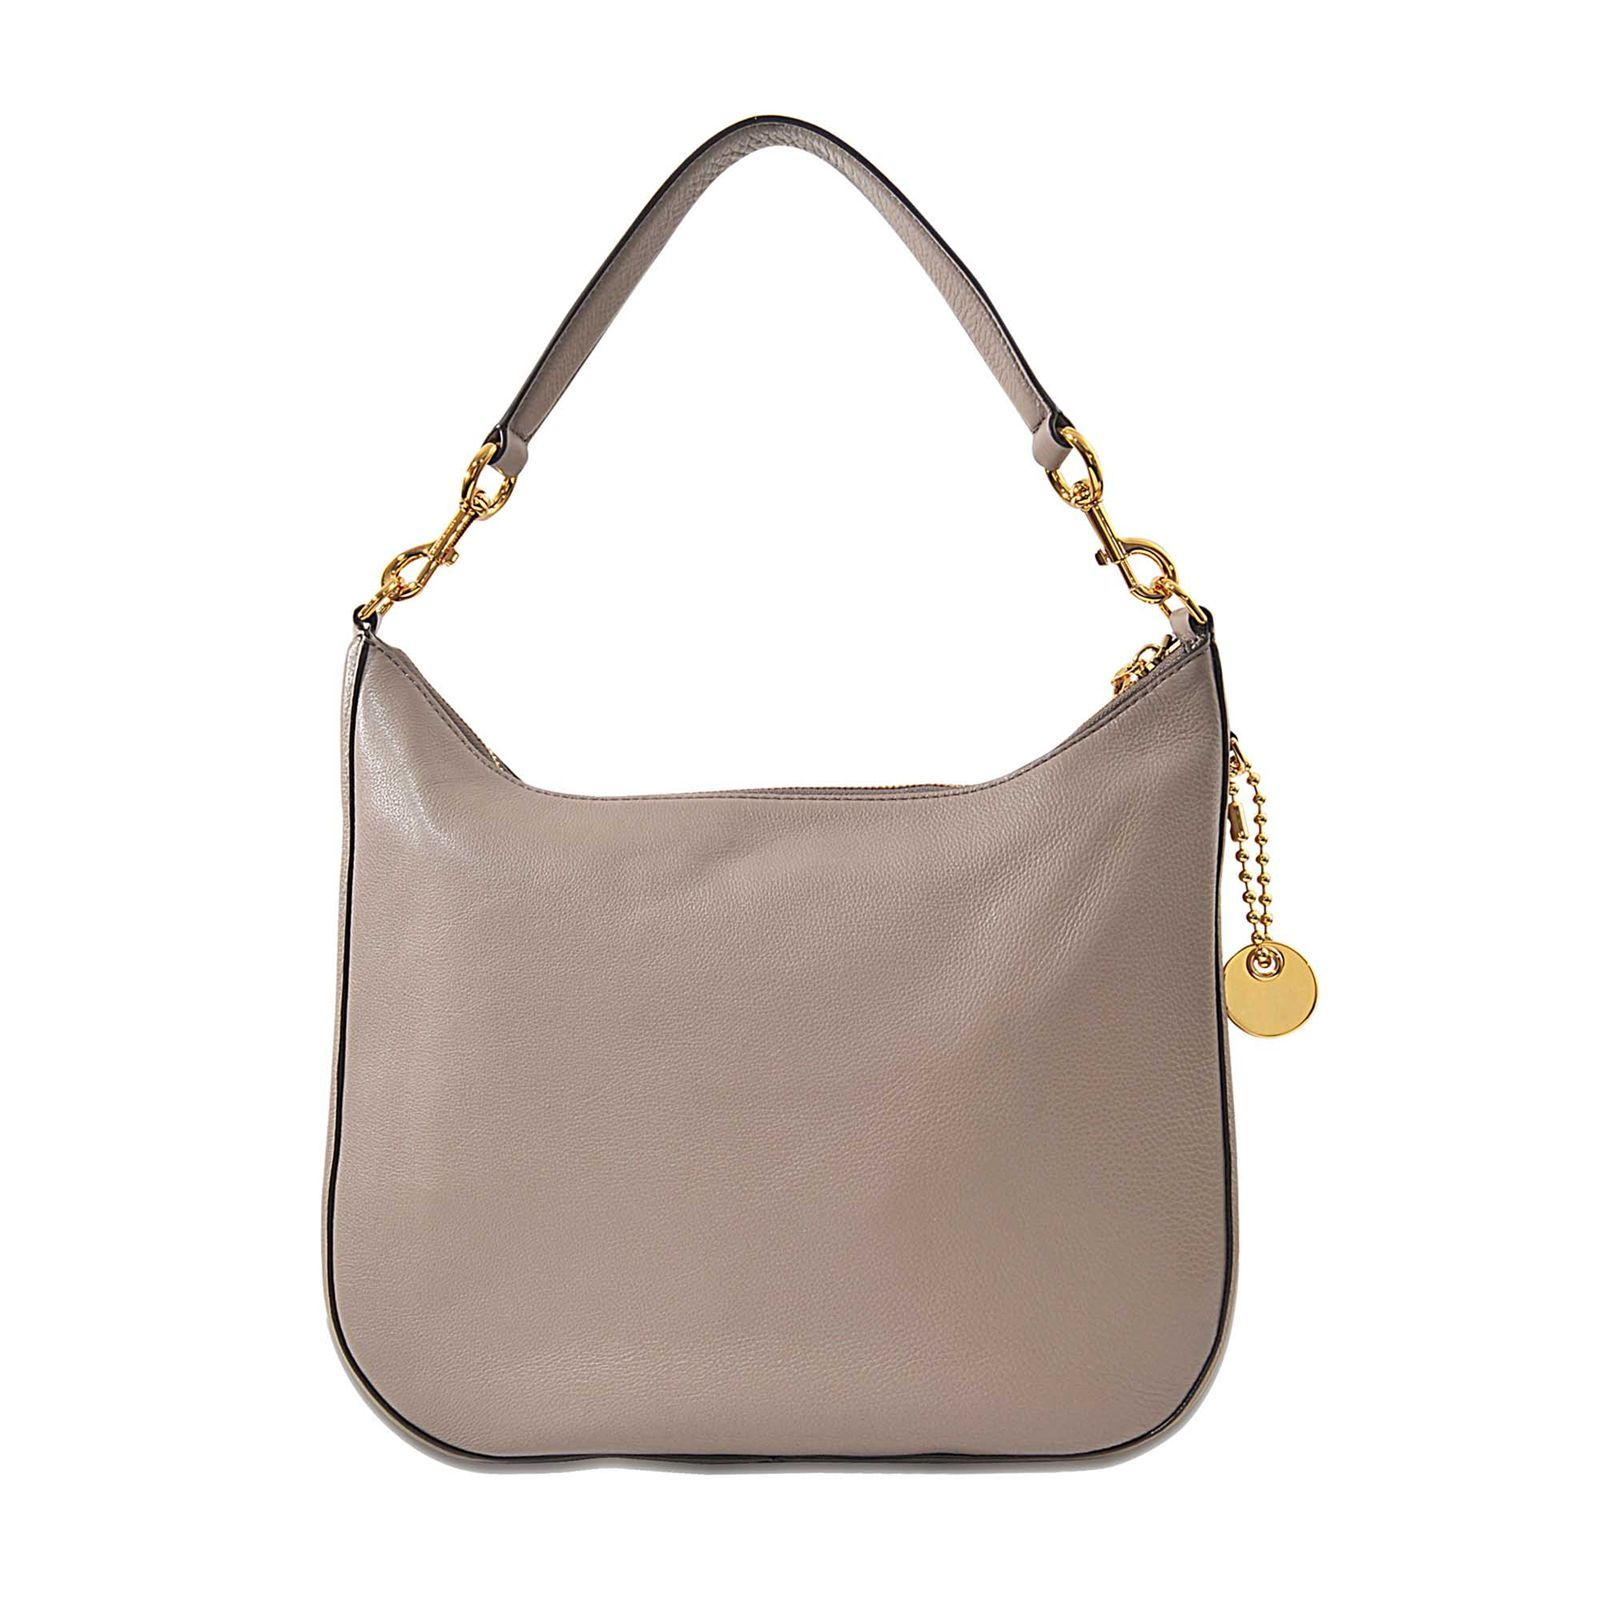 Marc Jacobs Sac hobo en cuir